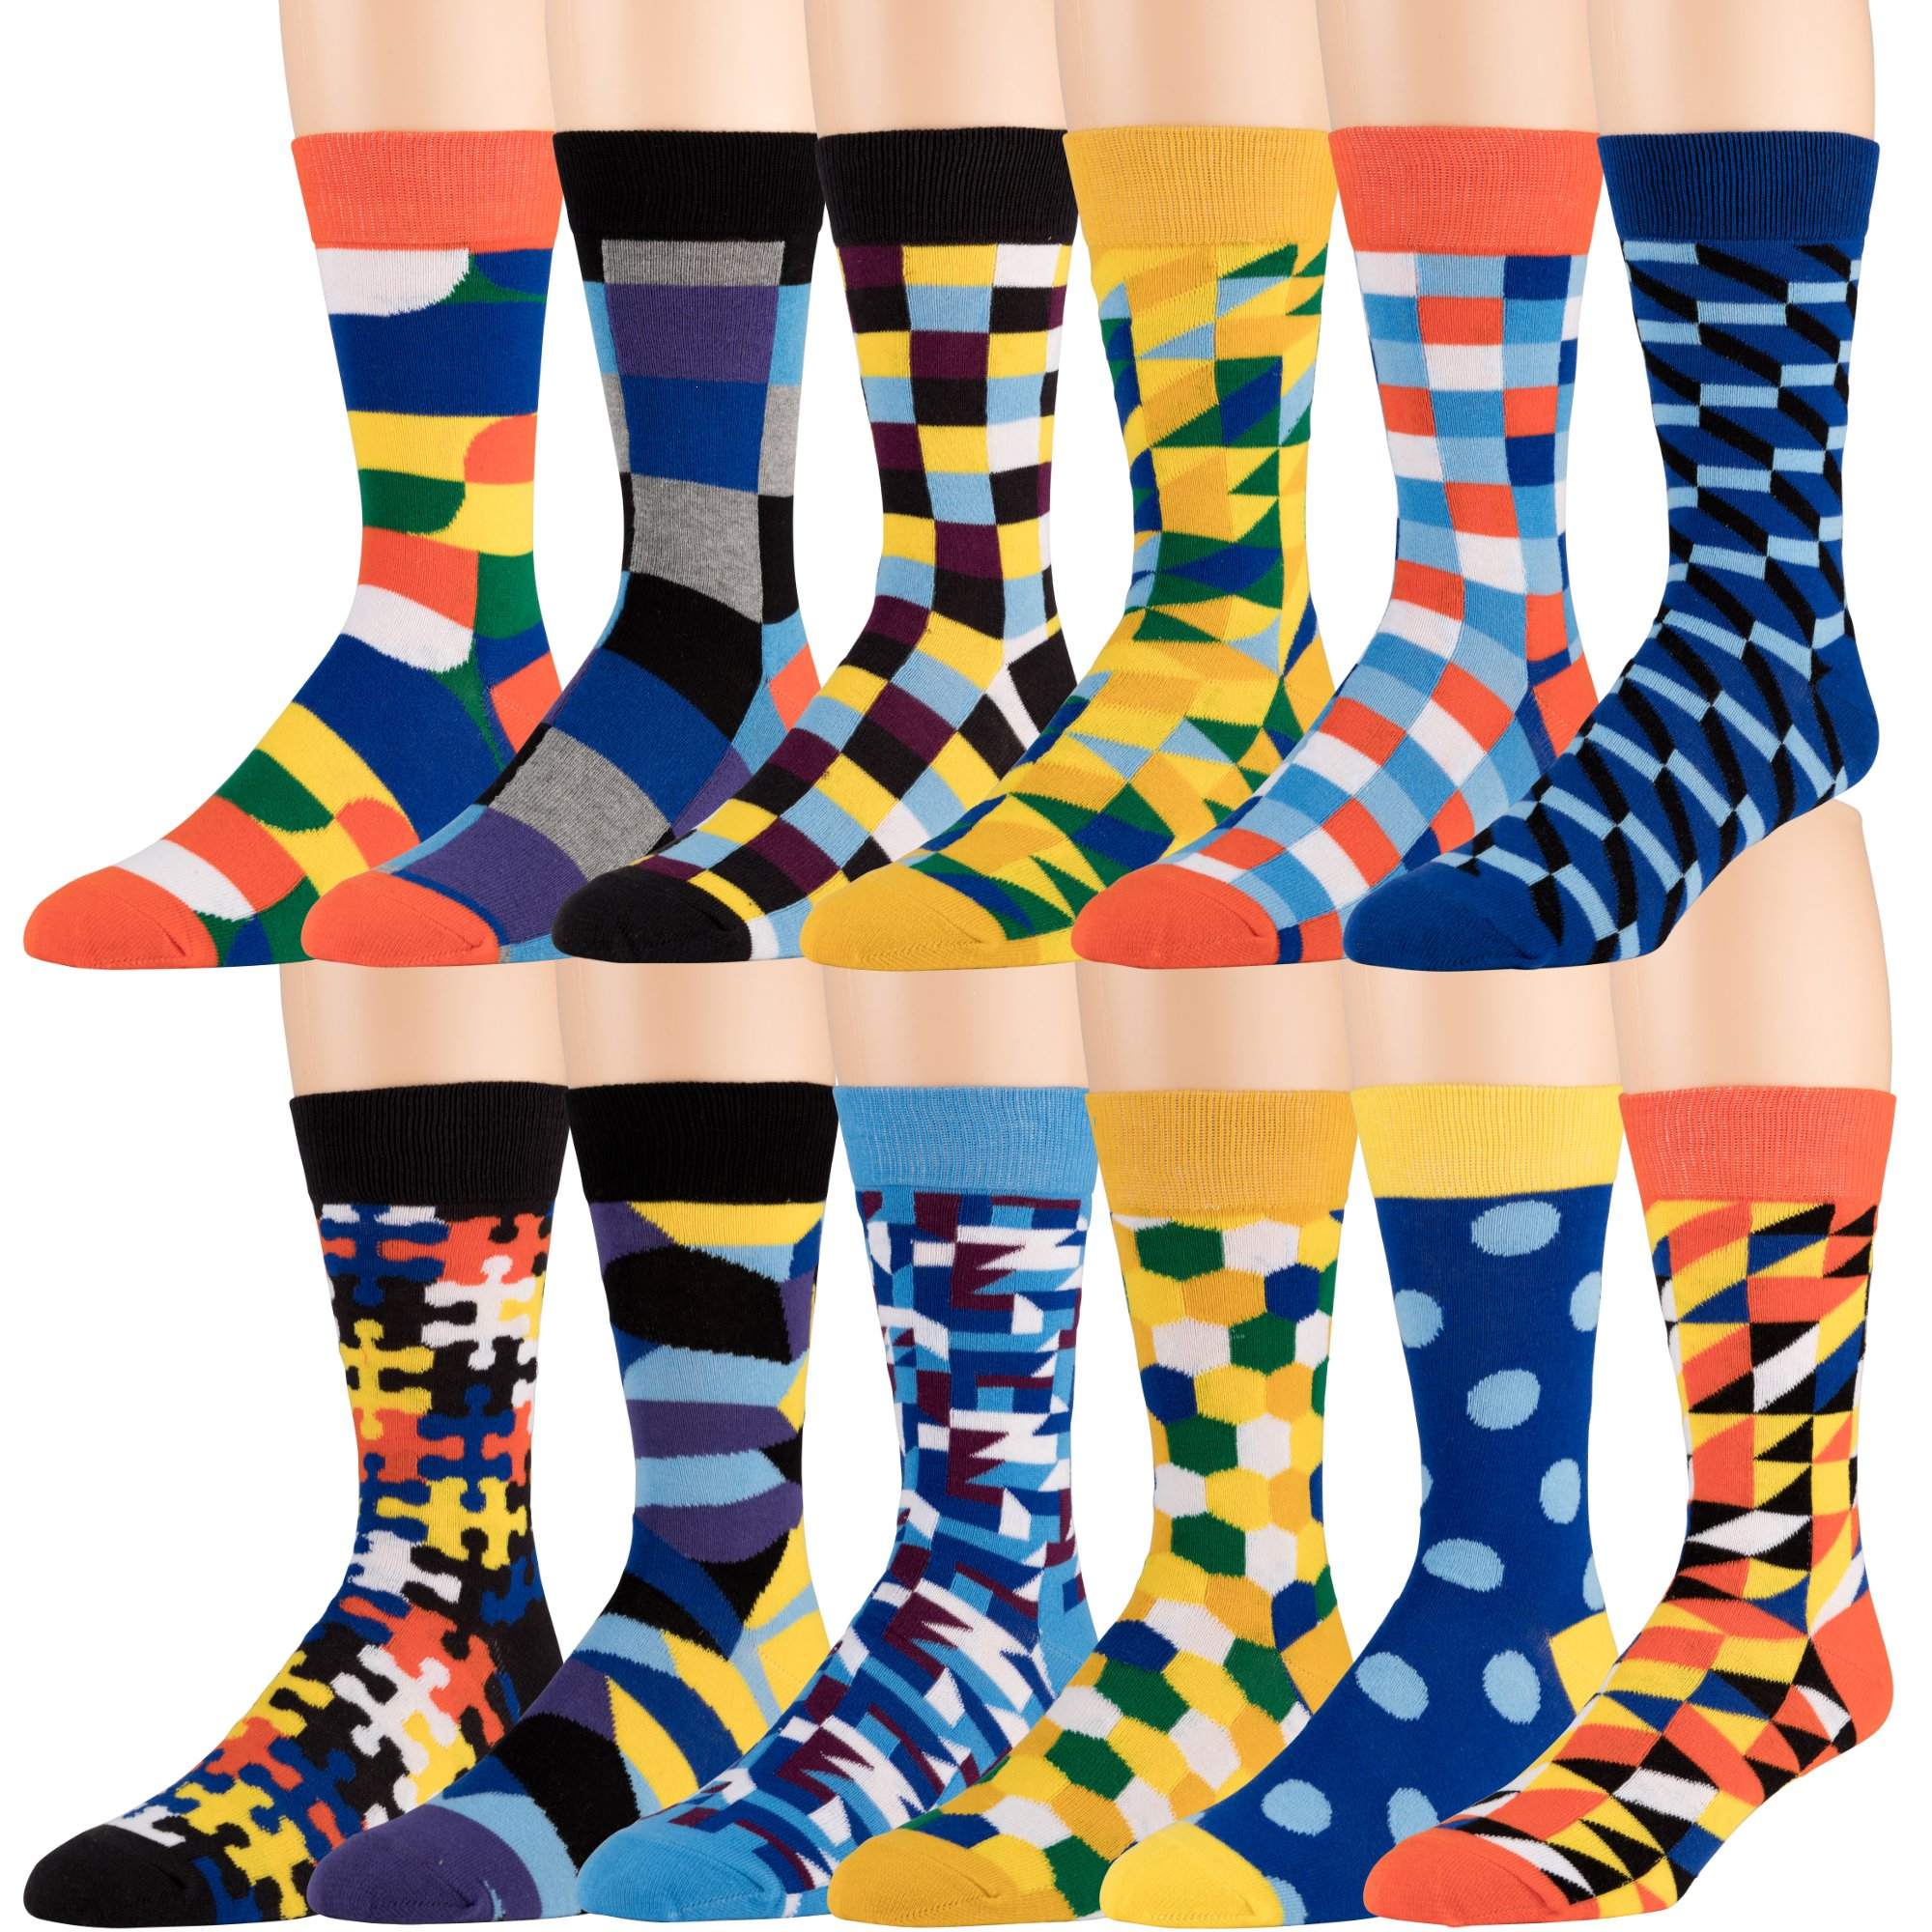 Men's Cotton Blend Socks, Fun and Funky Patterns and Colors -12 Pack